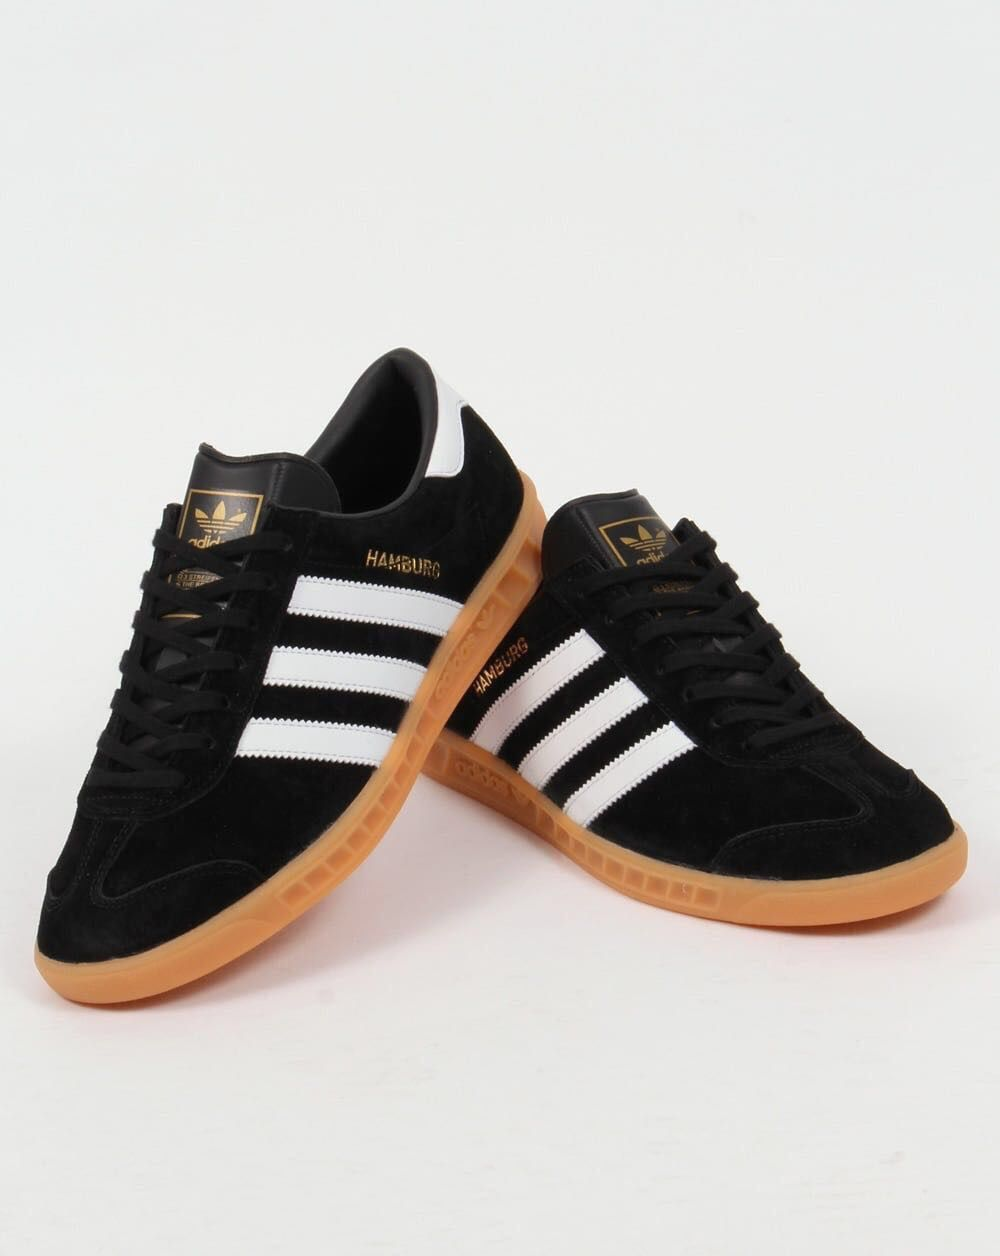 Adidas for man   Shoes   Black adidas shoes, Shoe boots, Adidas